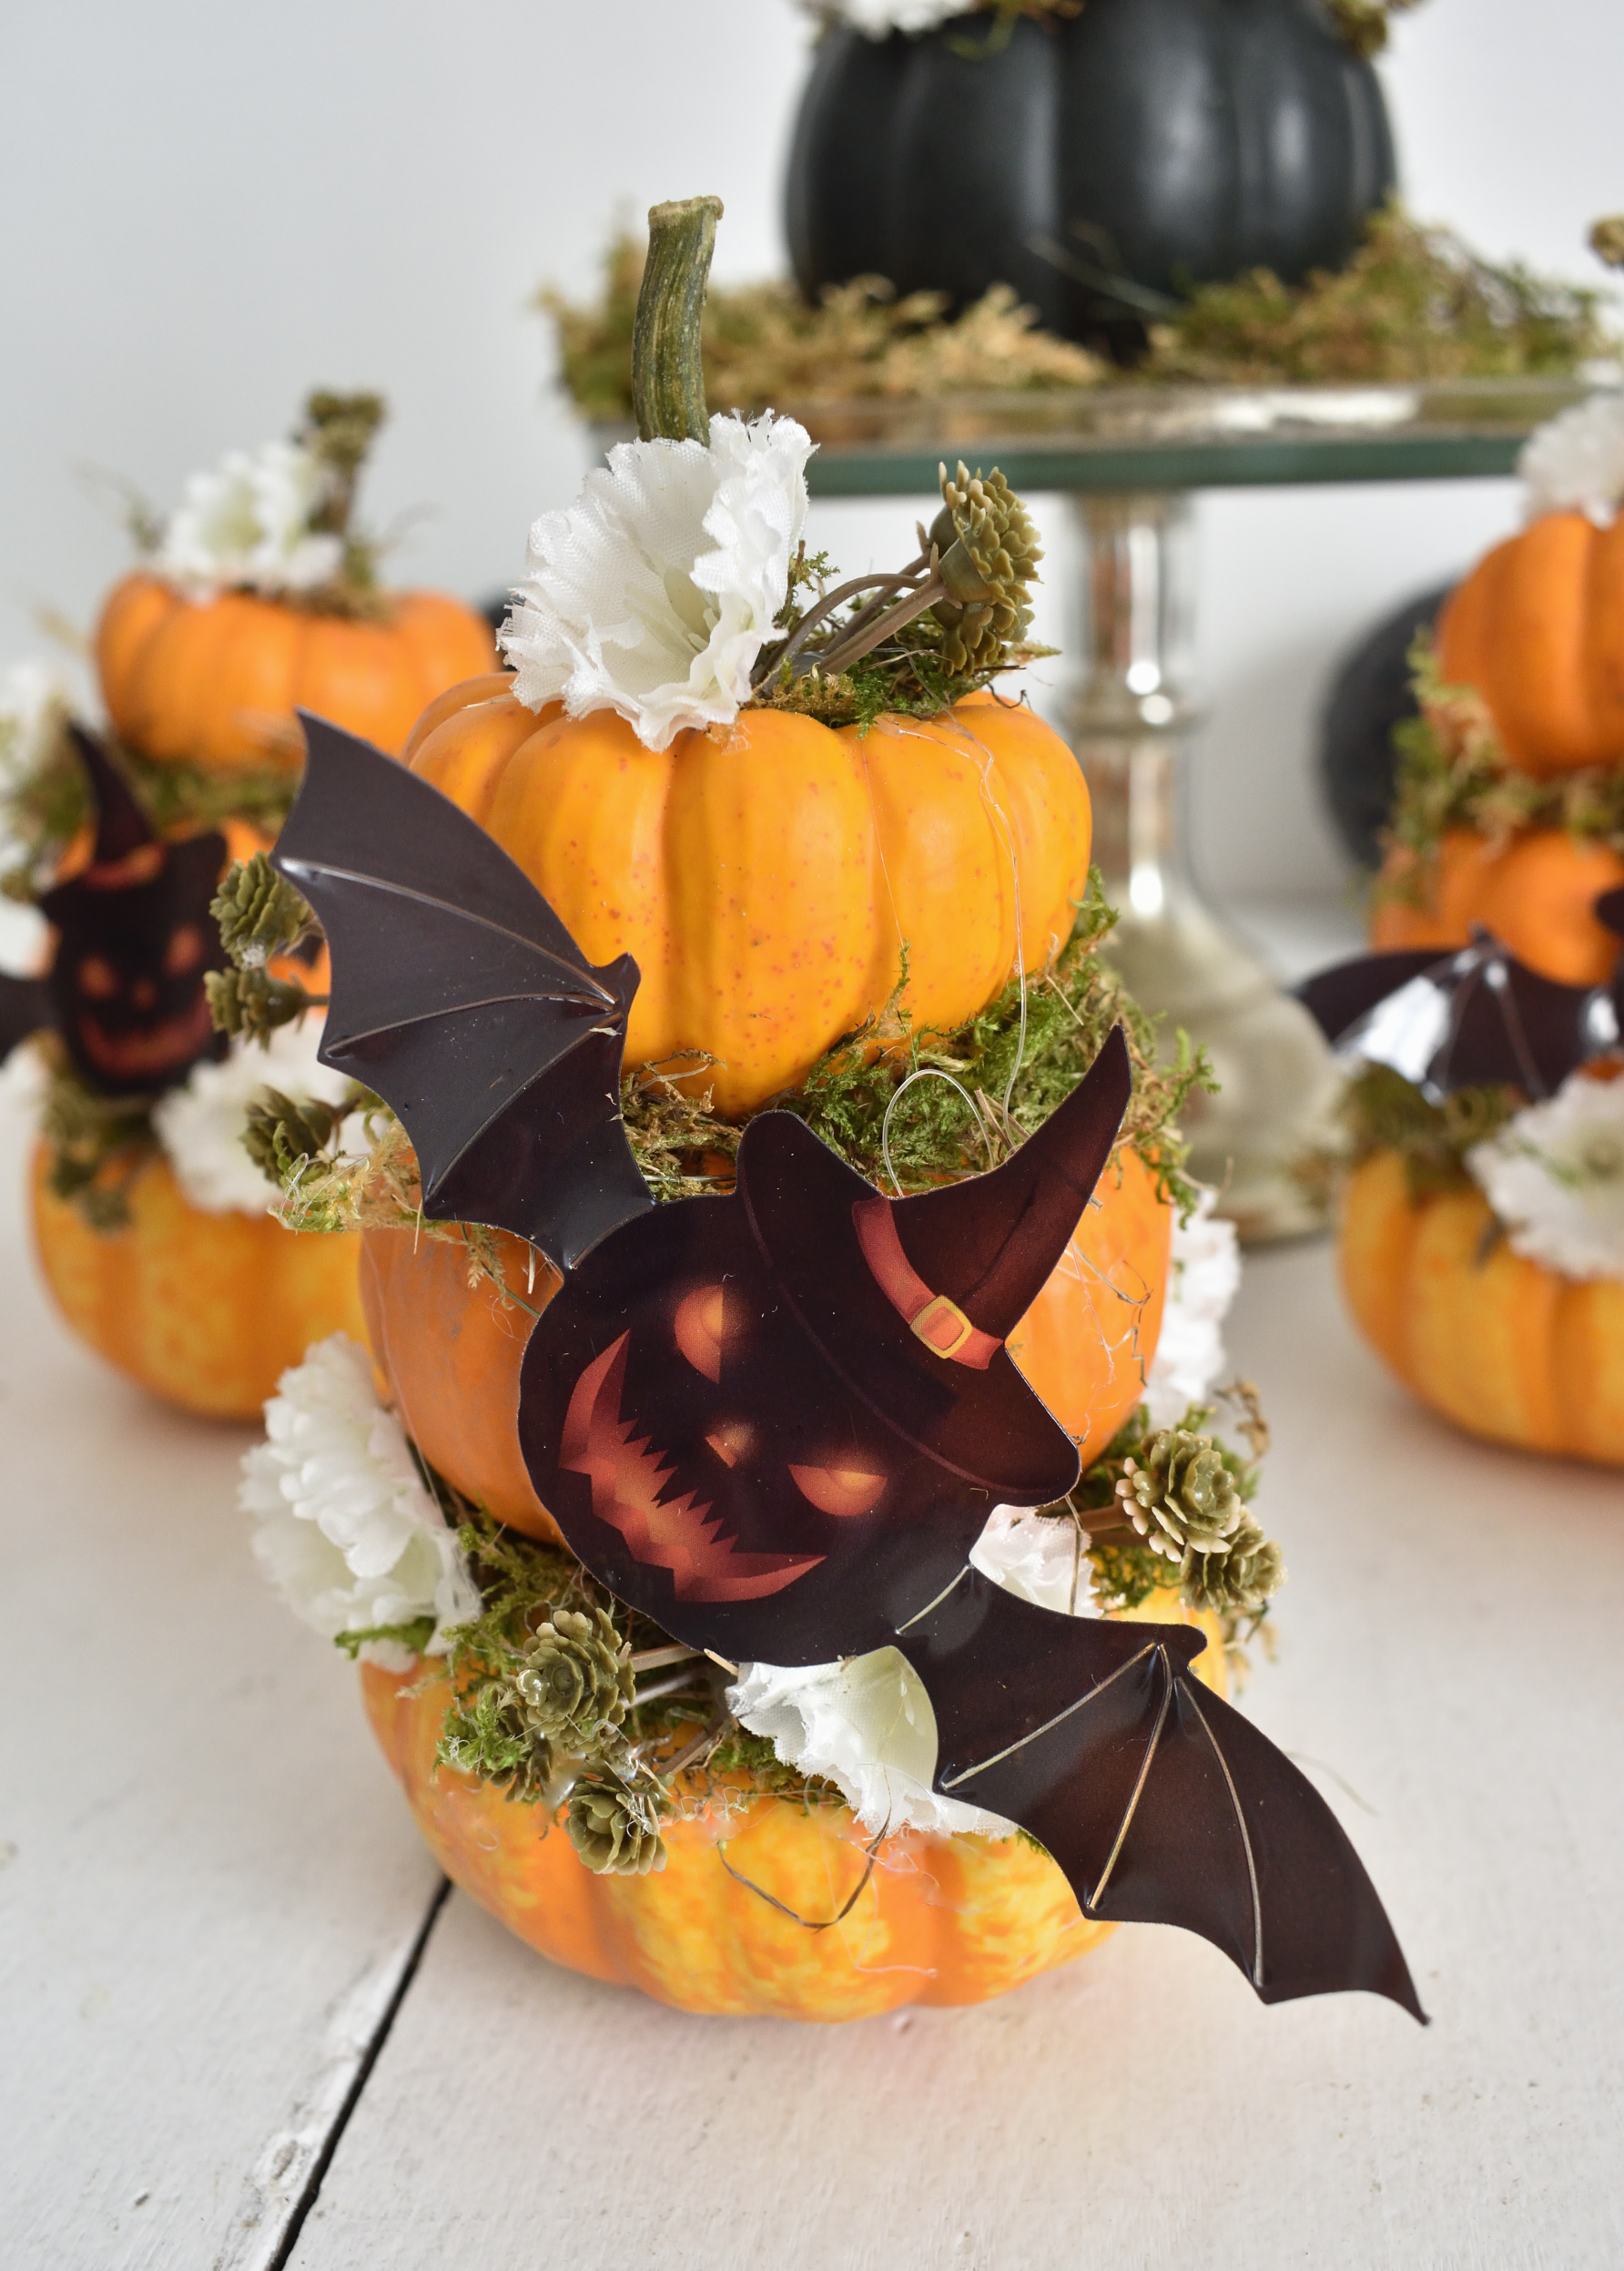 Mini Pumpkin Topiary Tutorial For Creating Cute Halloween Decorations